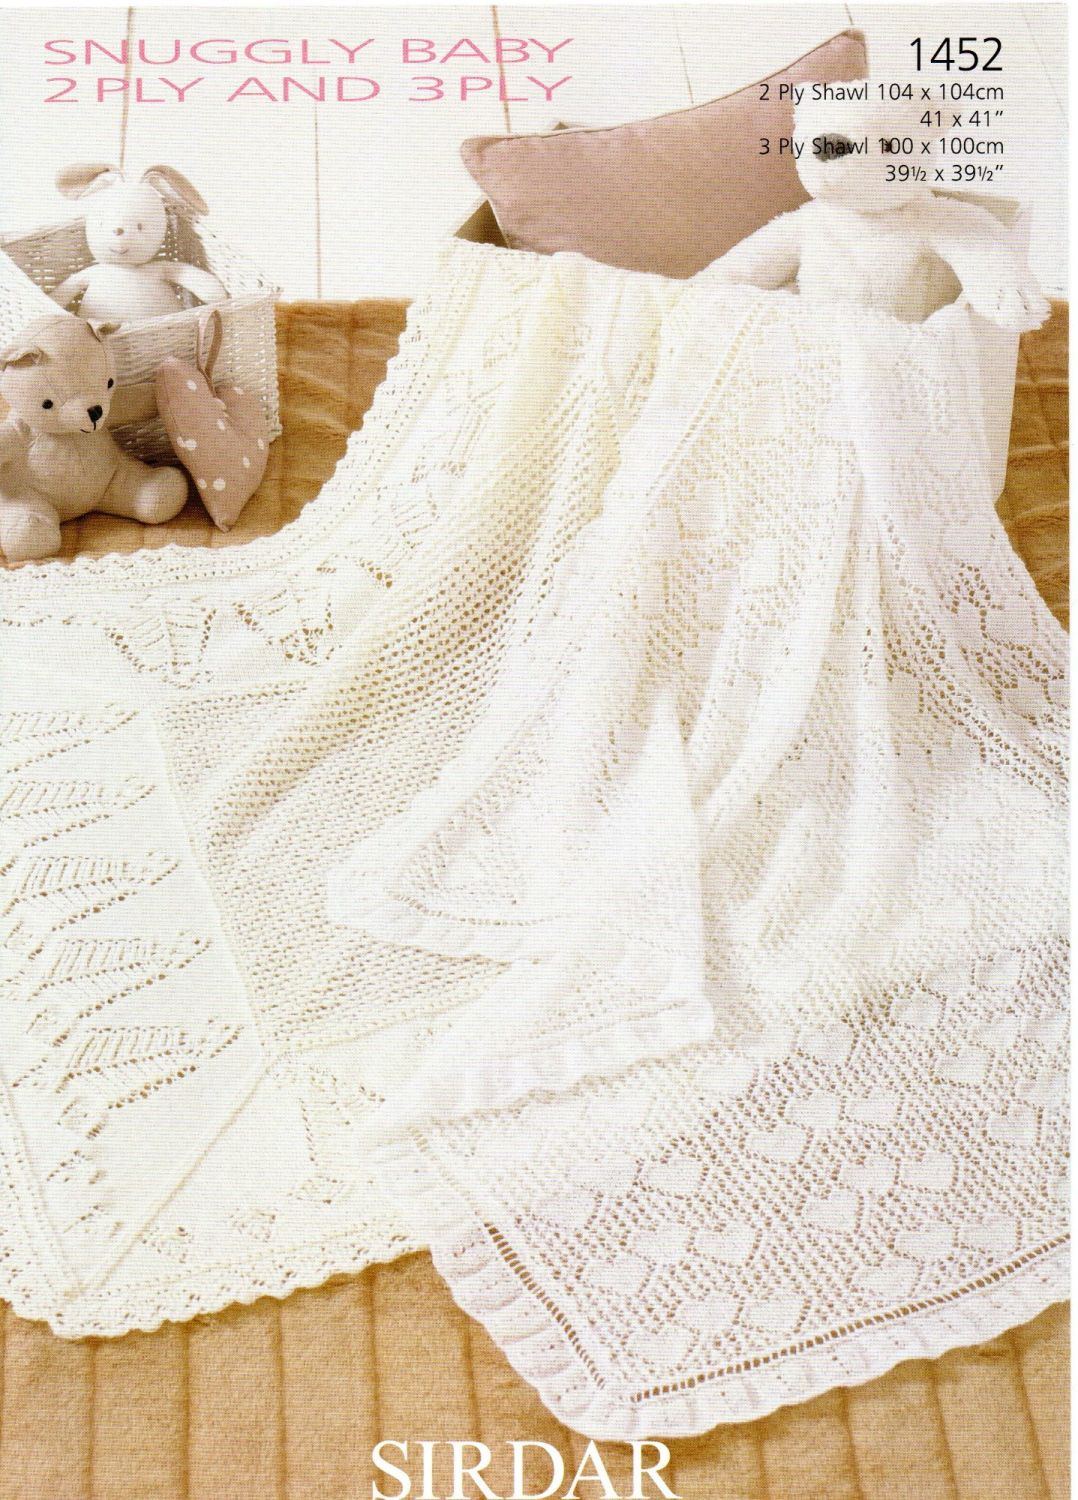 SHAWLS BY SIRDAR IN 2PLY AND 3 PLY